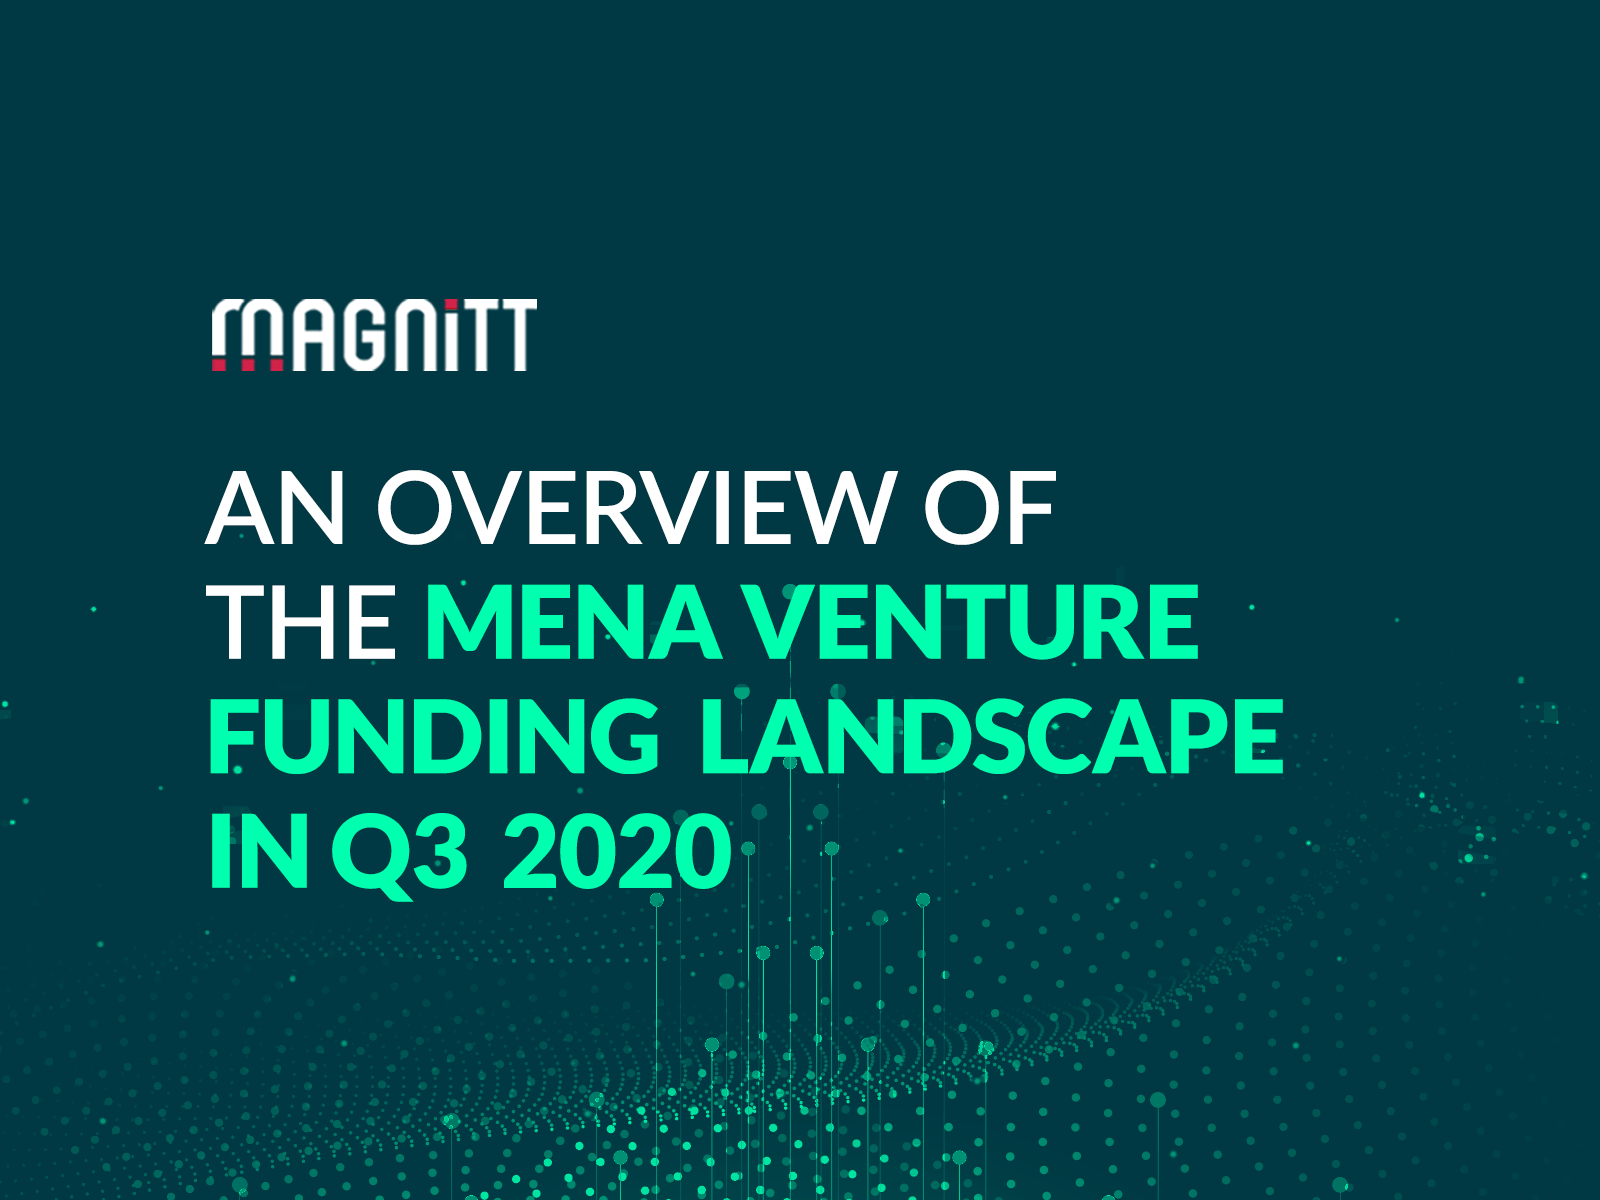 2020 startup funding amount matches 2019 levels, despite 50% drop in investment deals from Q2 to Q3 in MENA, according to MAGNiTT